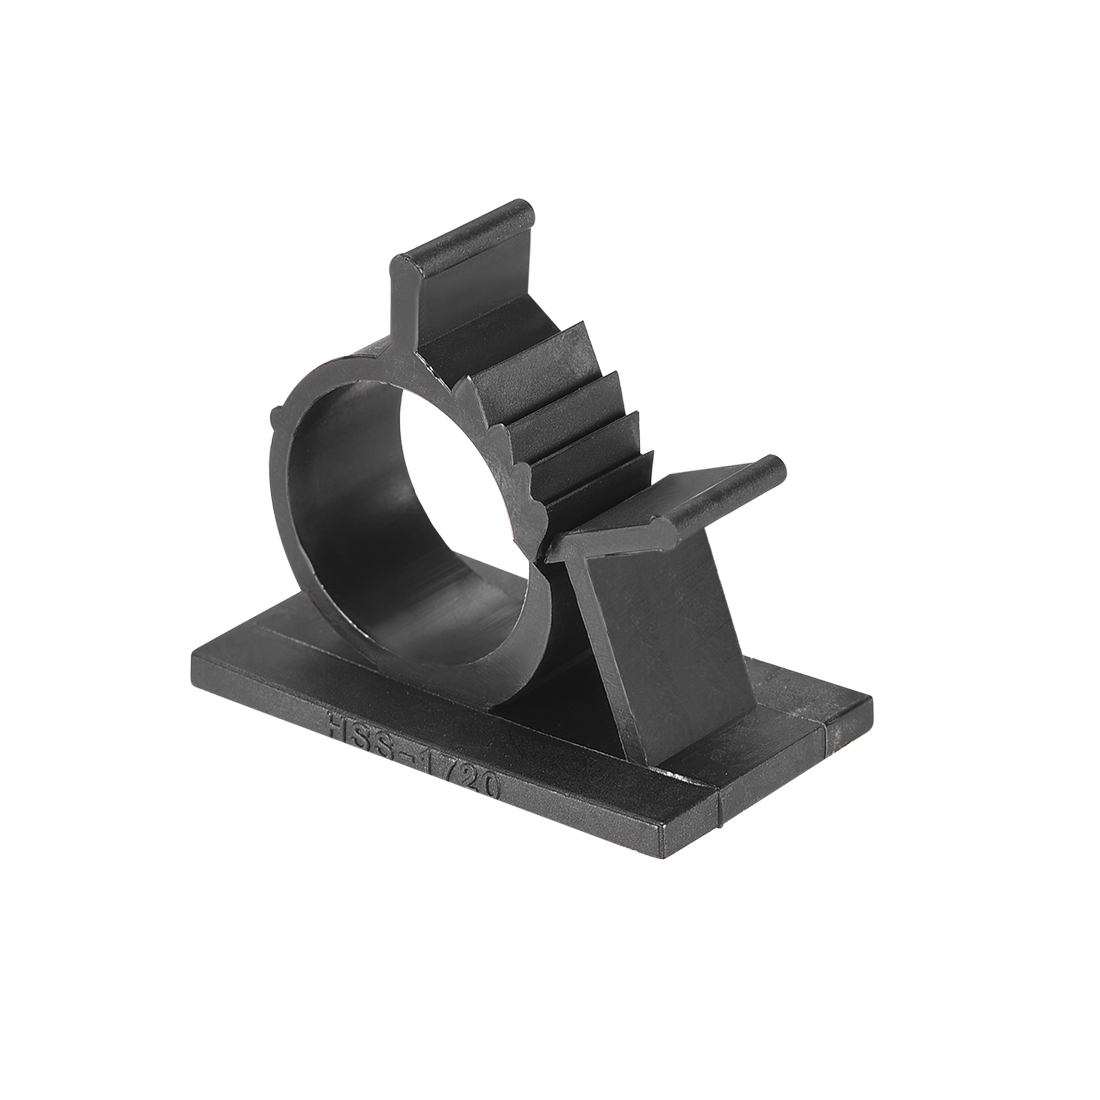 Adjustable Black Cable Clips Buckle Adhesive Base for 15mm-19mm Cords 50Pcs